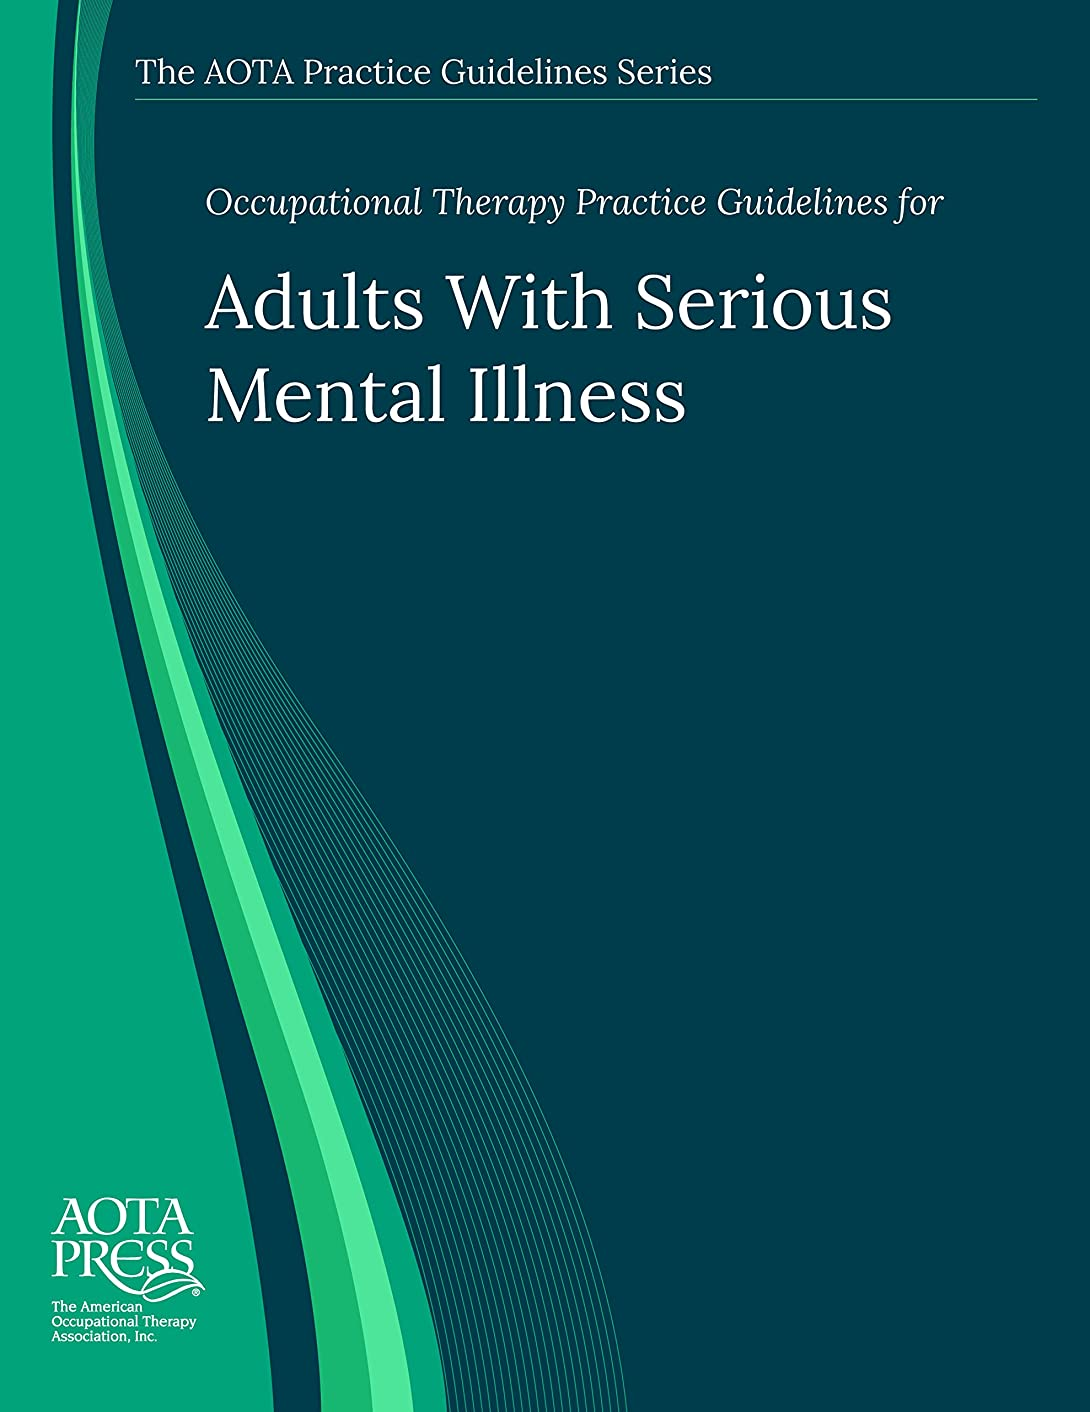 Occupational Therapy Practice Guidelines for Adults With Serious Mental Illness (AOTA PRACTICE GUIDELINES SERIES)